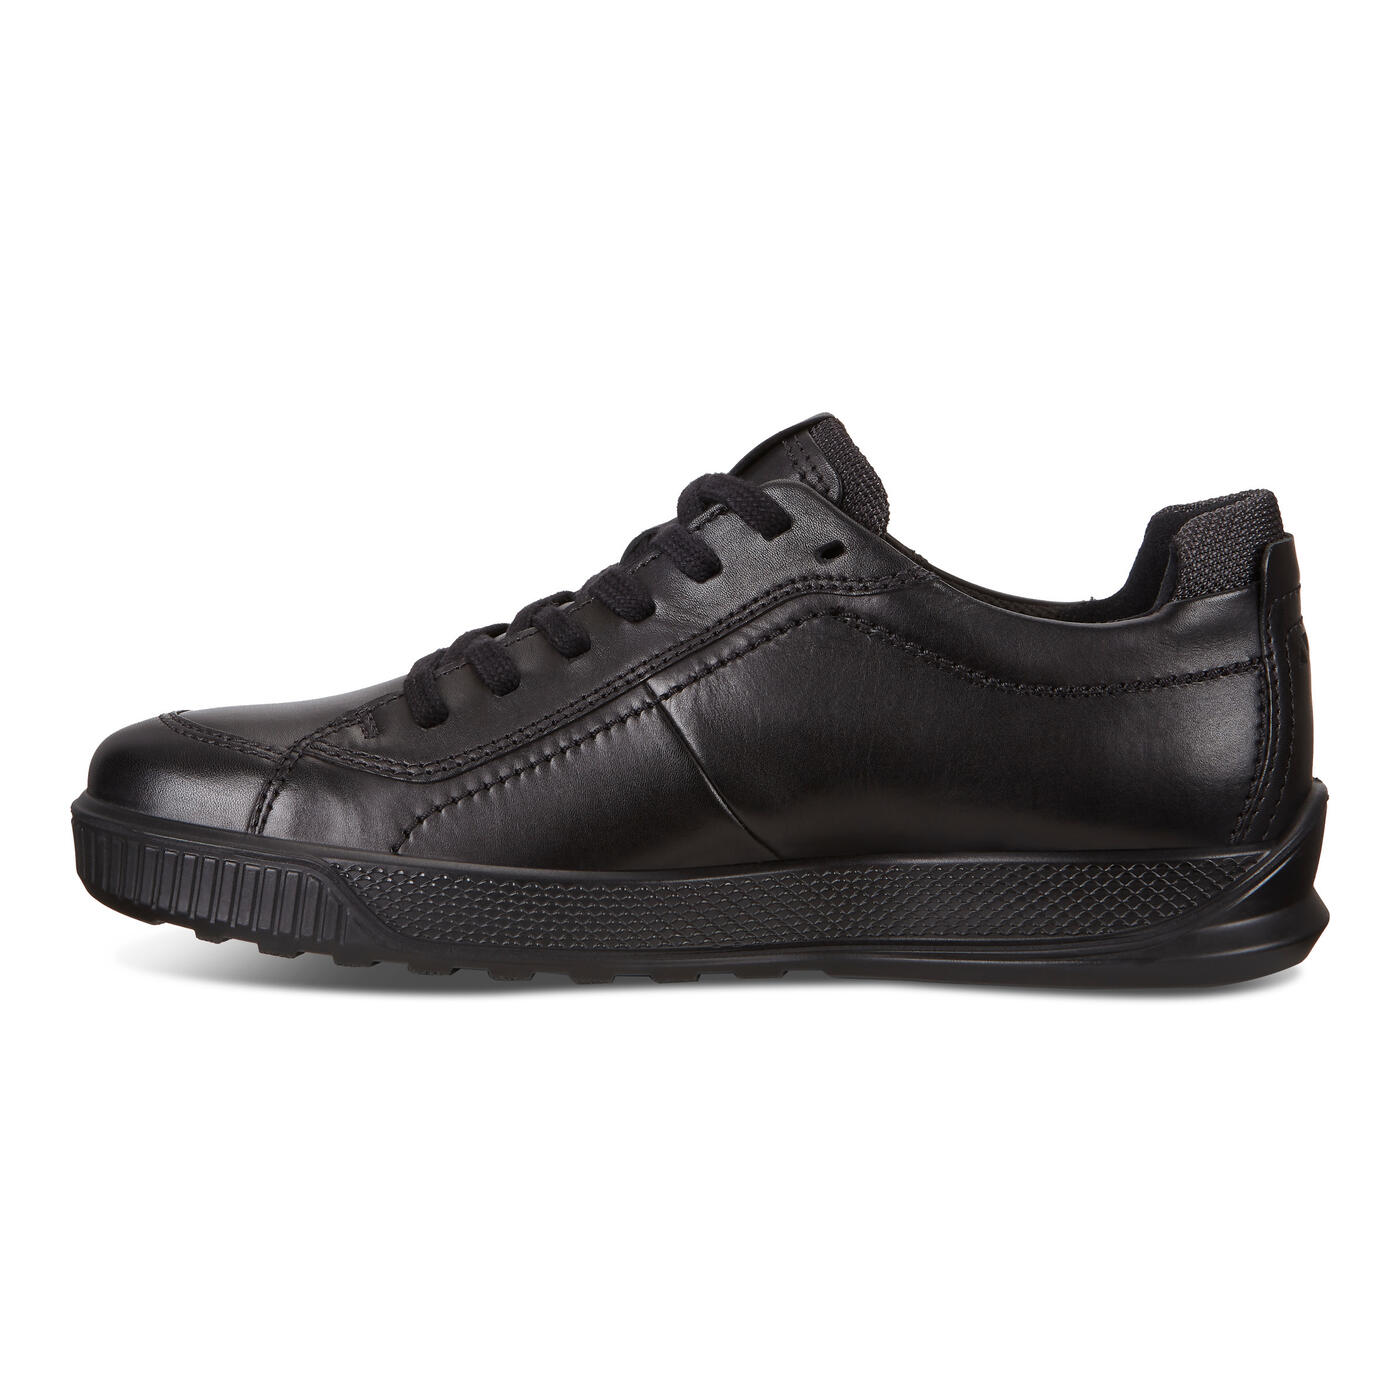 SNEAKER ECCO Byway POUR HOMMES